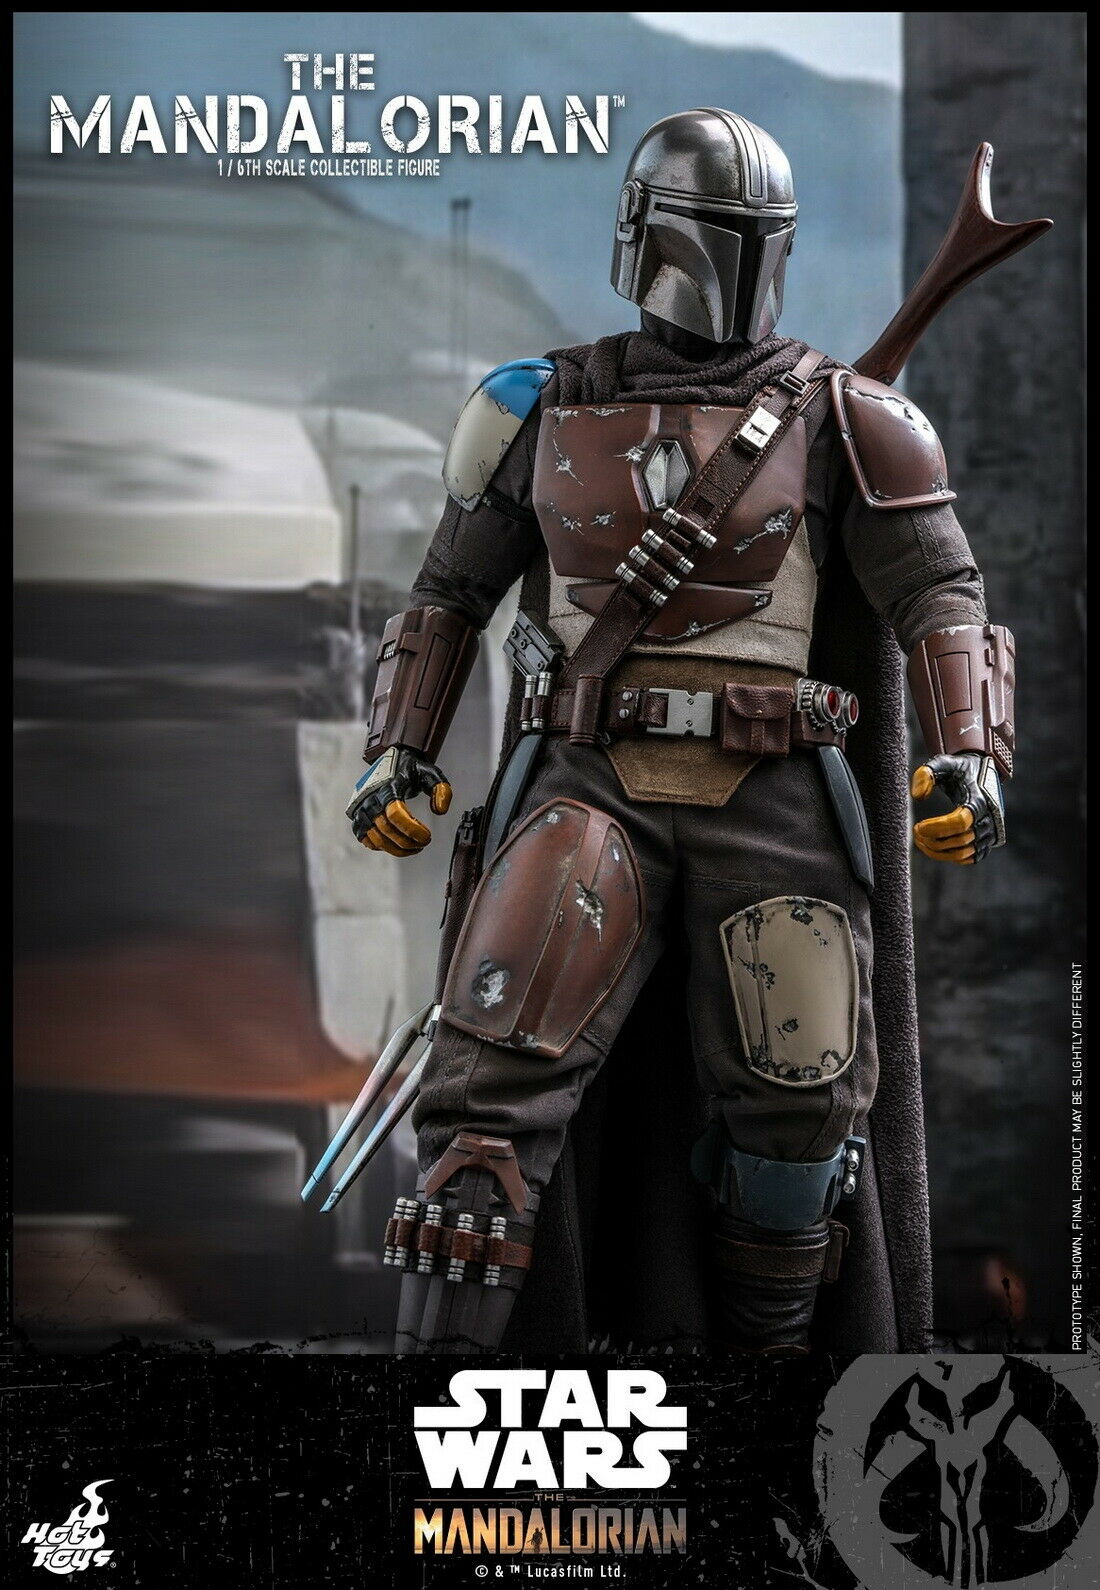 caliente giocattoli The uomodalorian 16th scale The uomodalorian Collectible cifra TMS007